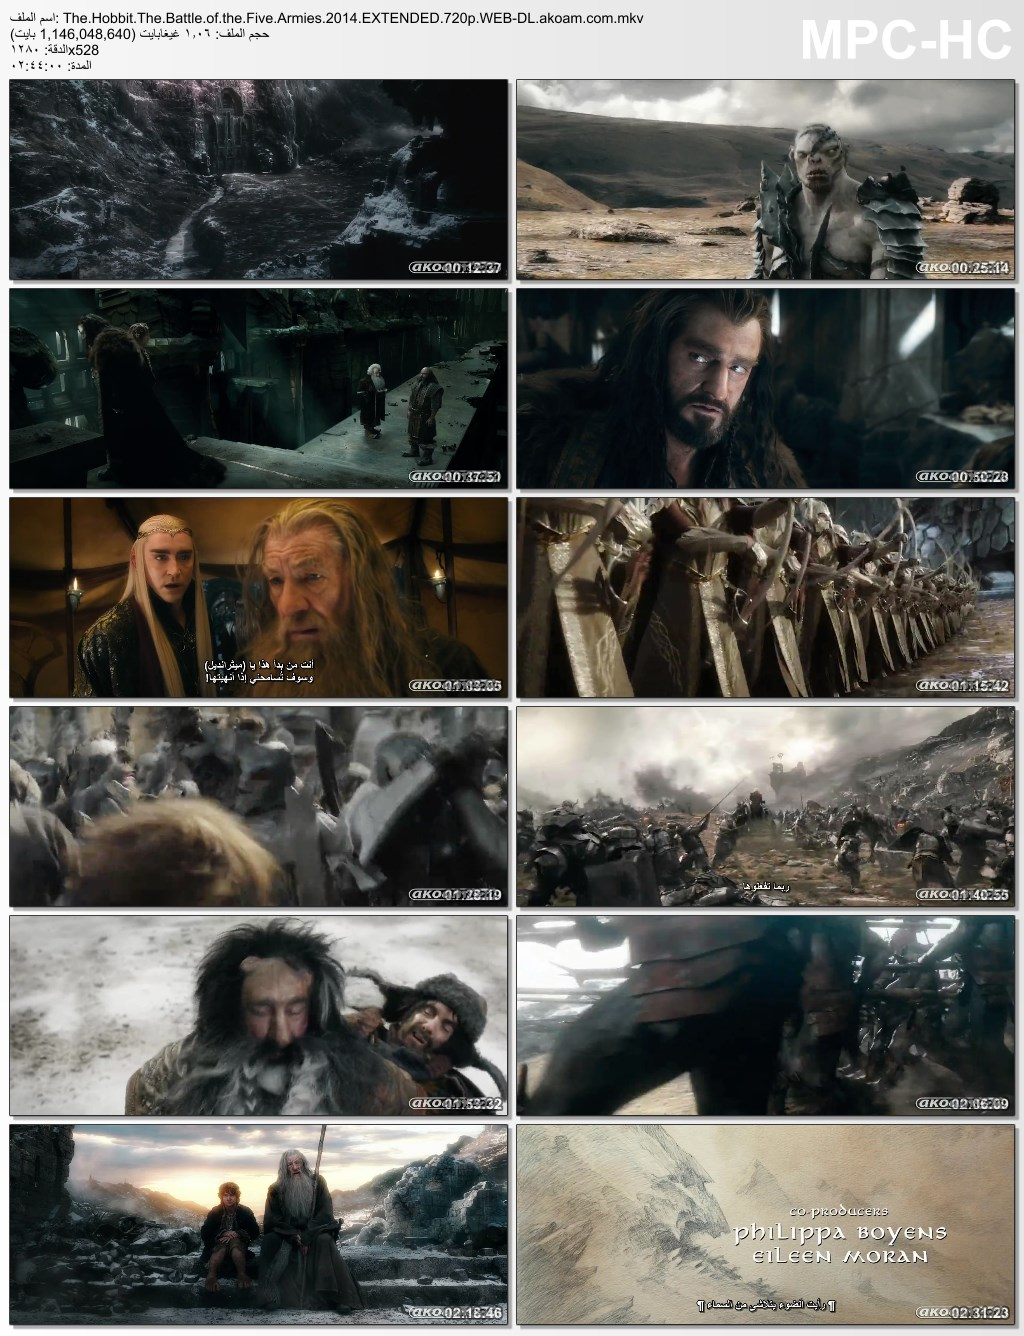 الاكشن,الملحمي,The Hobbit: The Battle of the Five Armies,The Hobbit,هوبيت